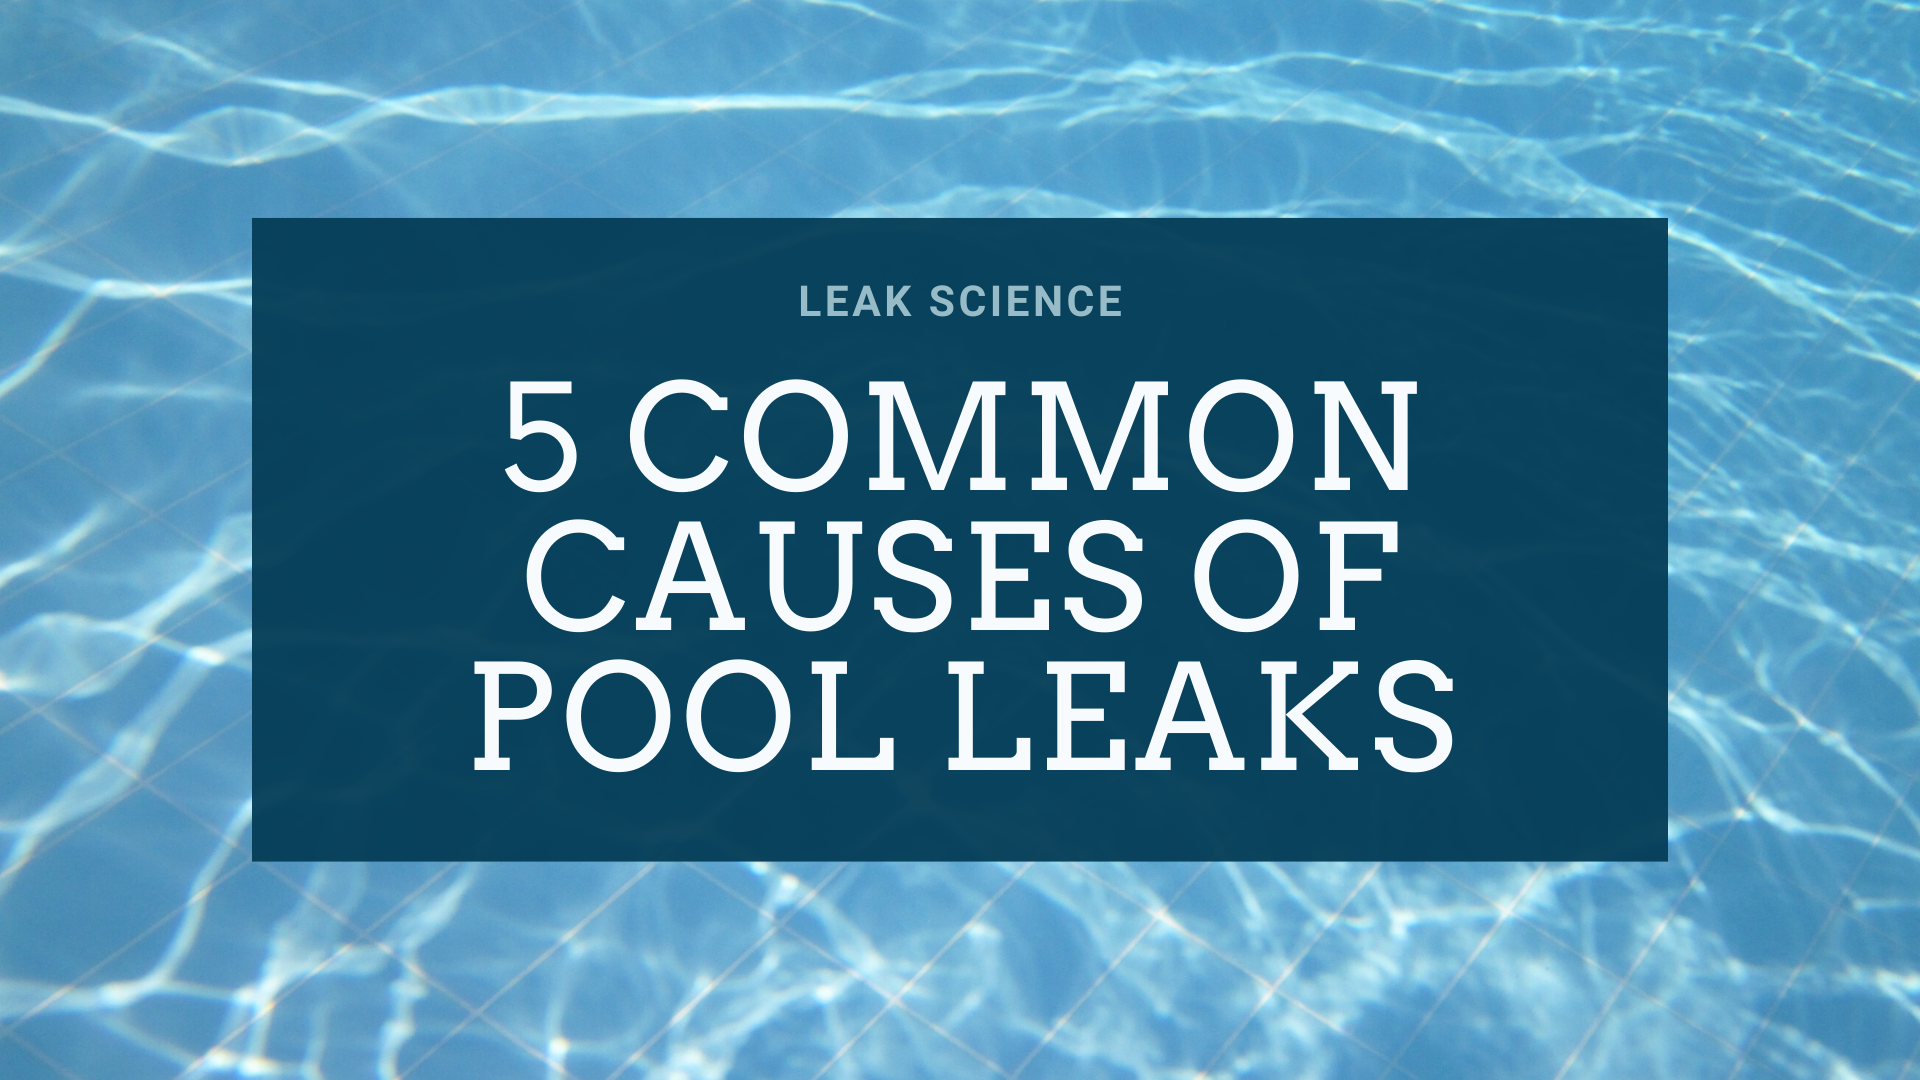 5 Common causes of pool leaks